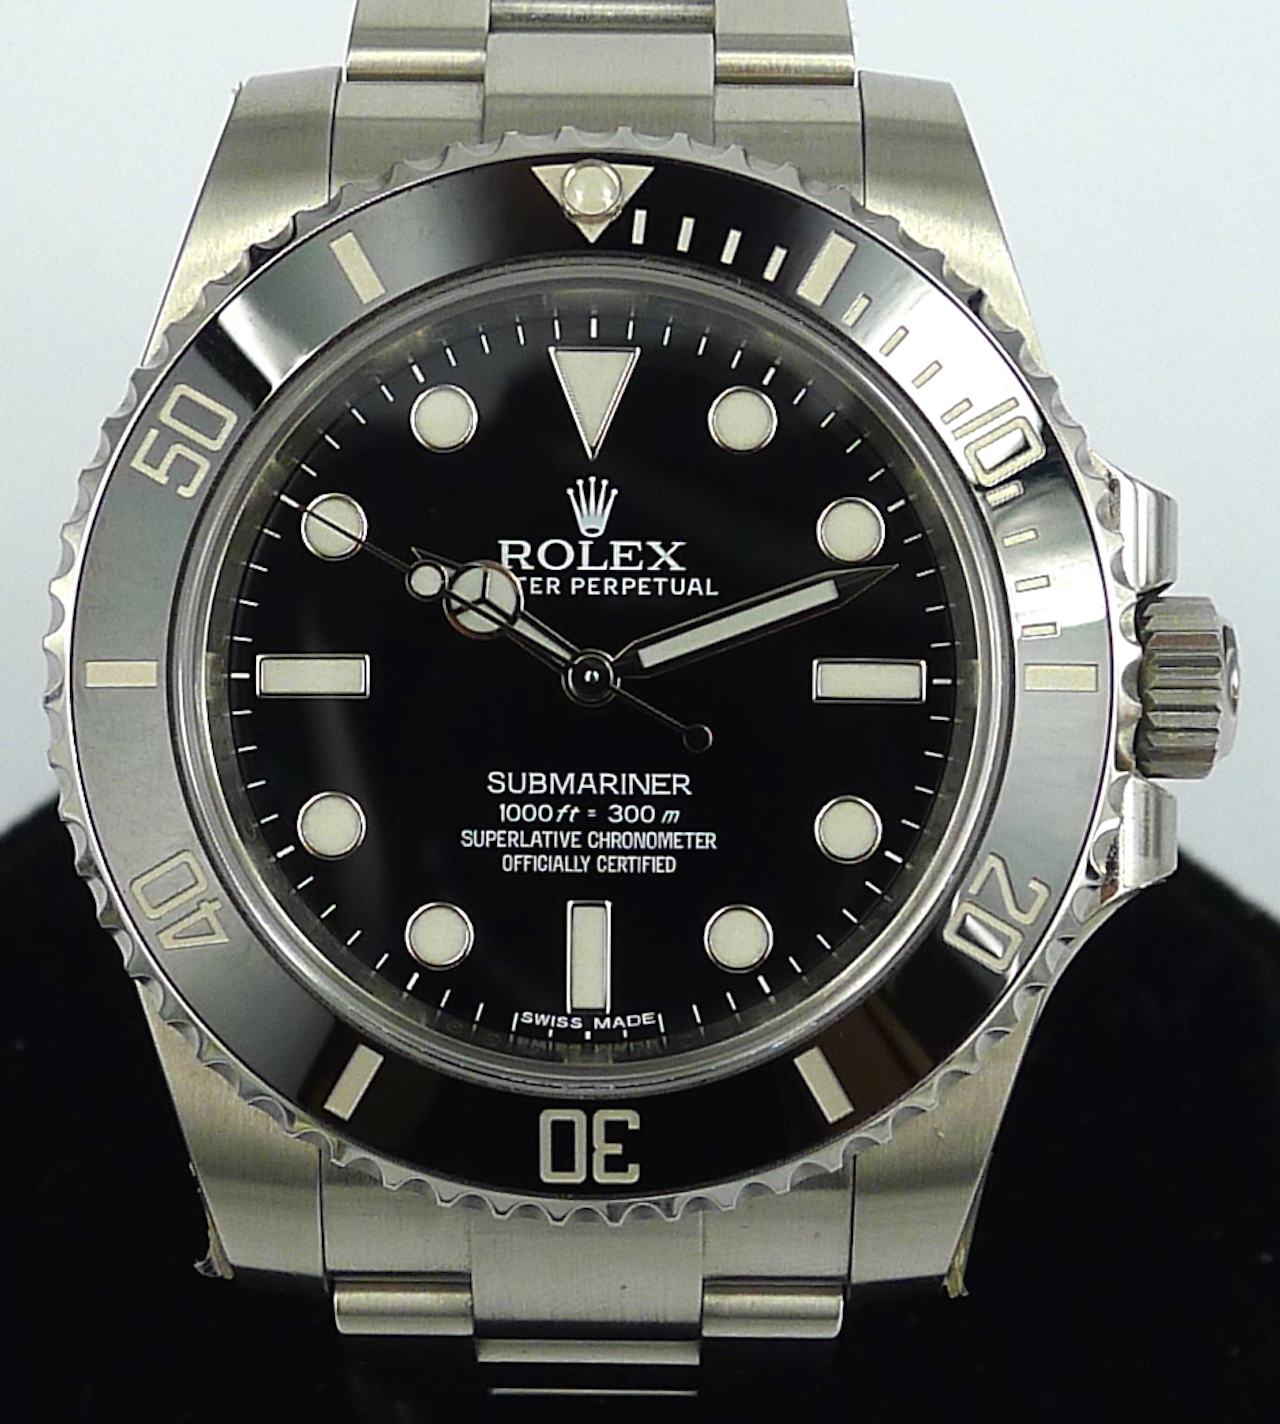 Rolex submariner no date ceramic